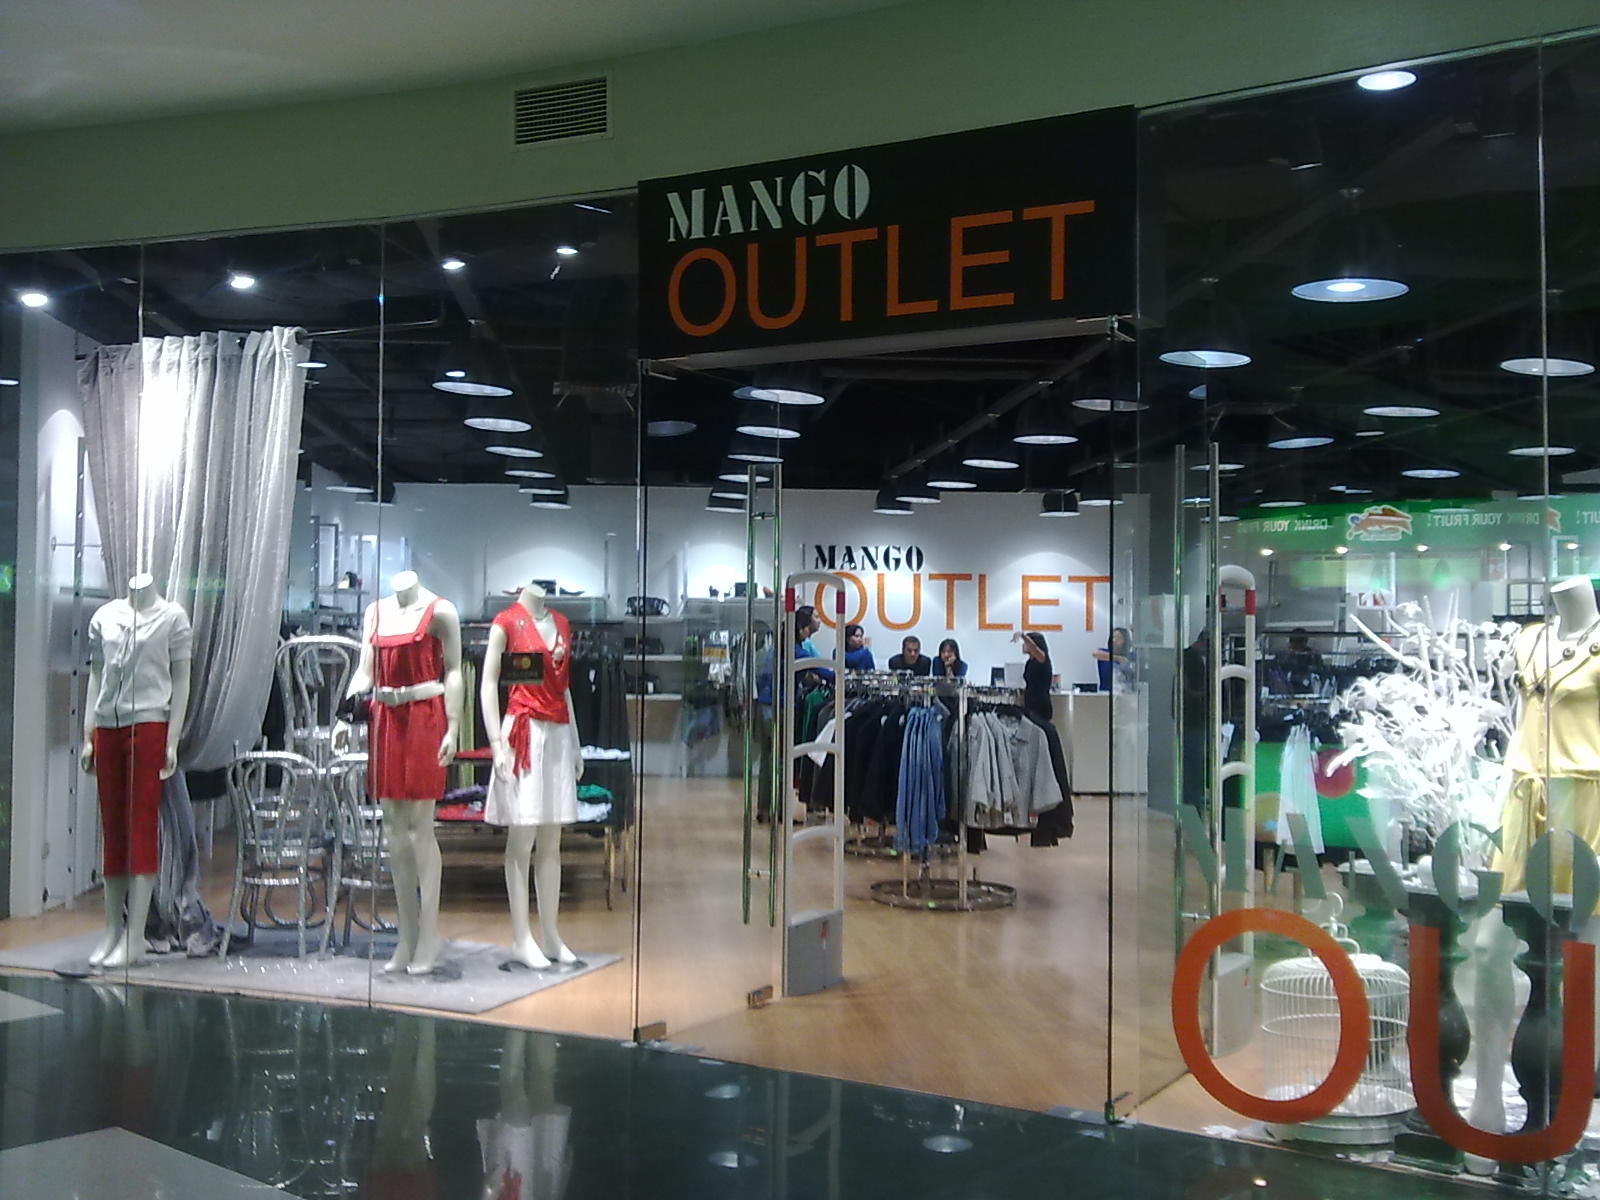 Mango Outlet Stores Have Mushroomed Around The Country I Know Of The One In Pampanga But Ive Never Been There I Was Pleasantly Surprised To See That A